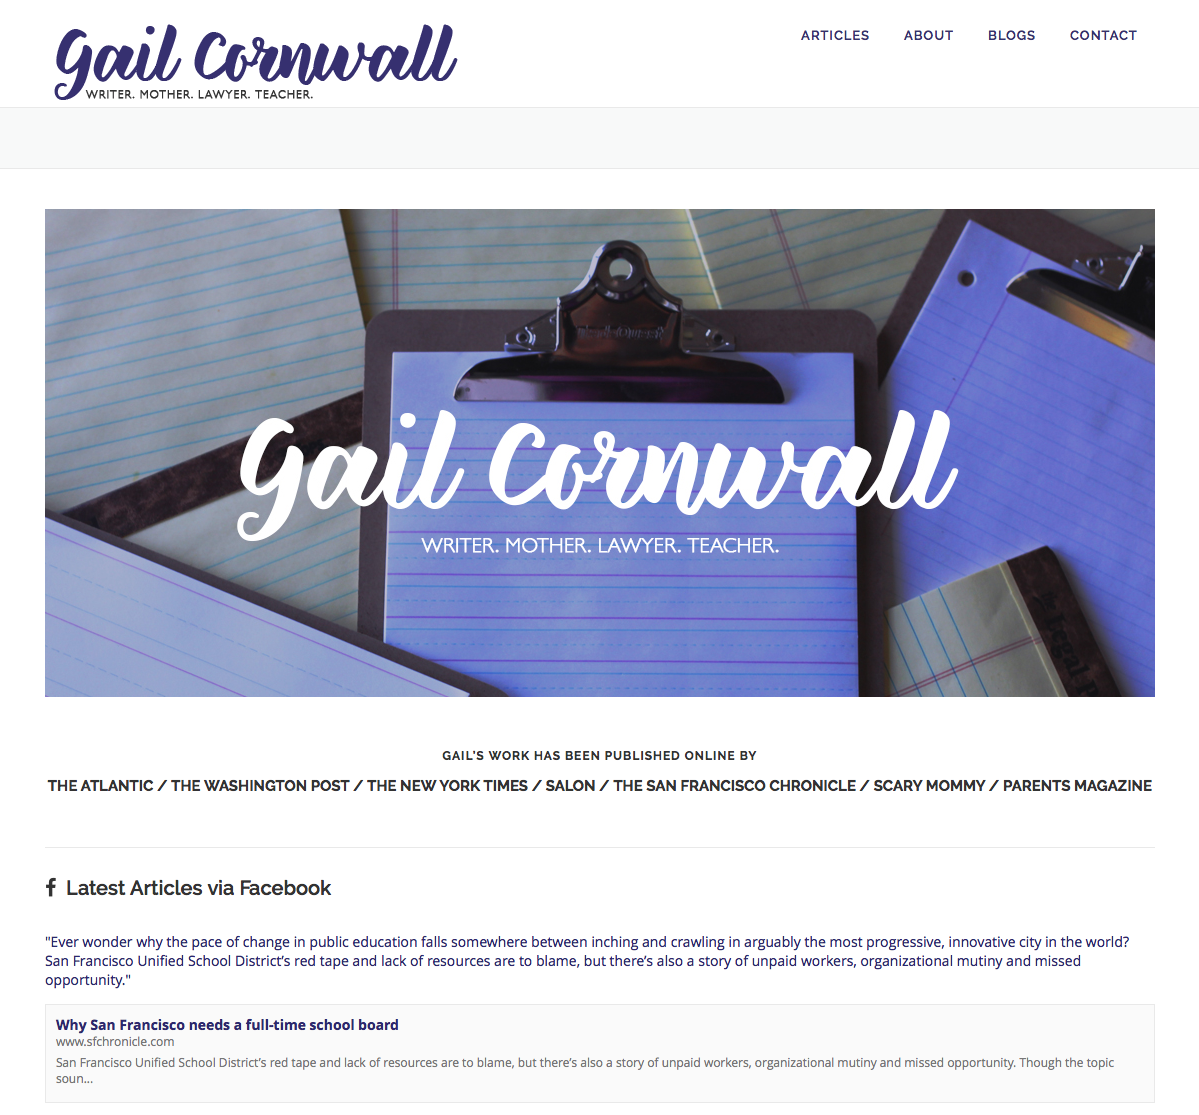 Wordpress redesign for writer/columnist/blogger Gail Cornwall. I created the custom logo as well.   The home page features a Facebook feed of her current articles that updates automatically.